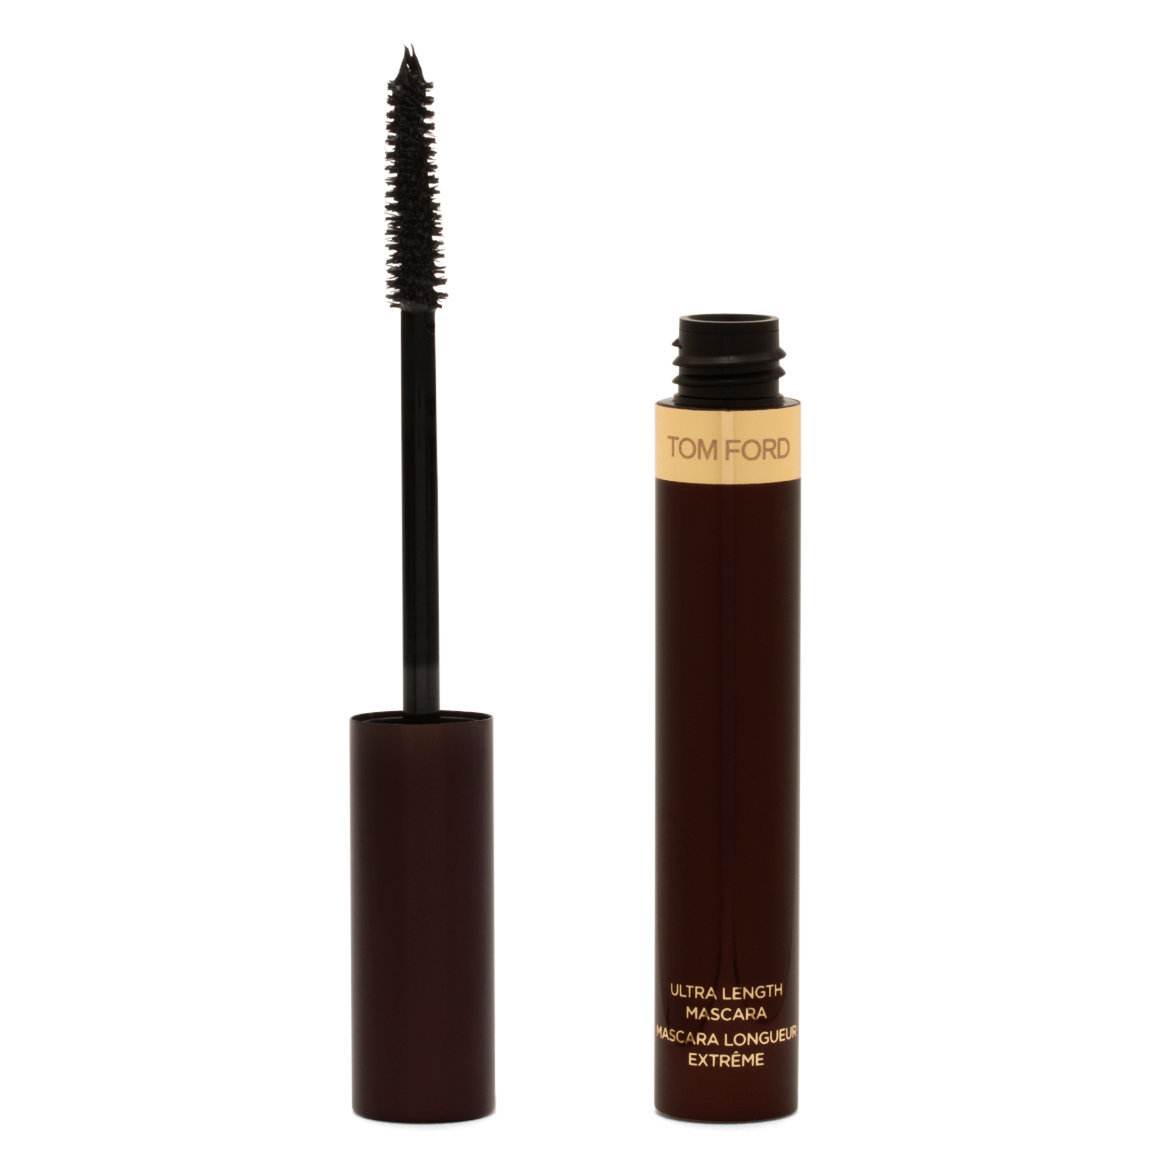 TOM FORD Ultra Length Mascara product swatch.